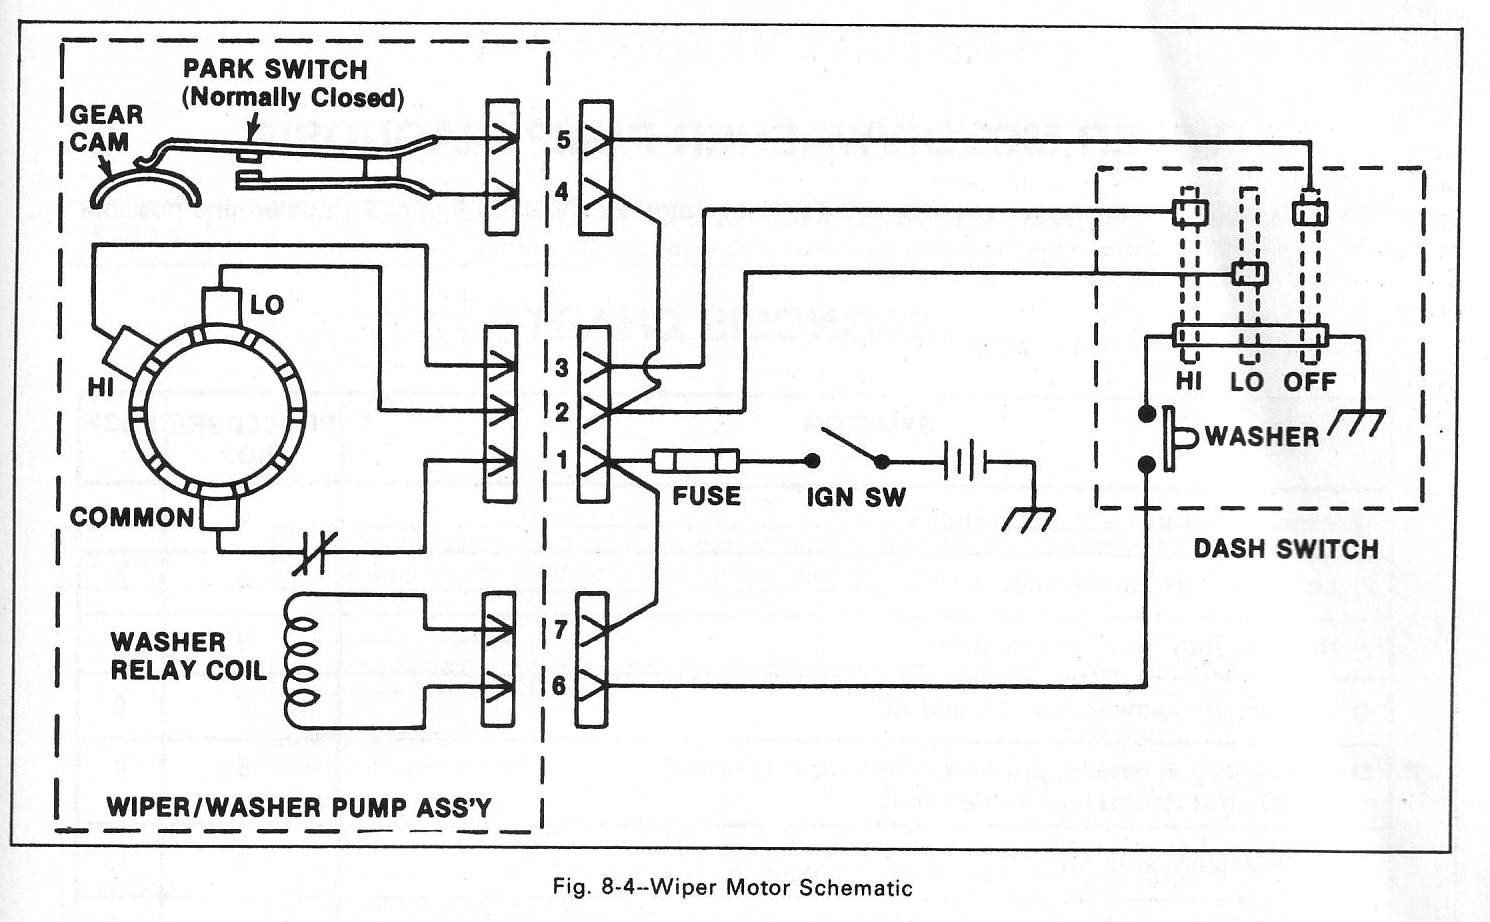 Cj5 Wiper Motor Wiring Diagram - Trusted Wiring Diagrams